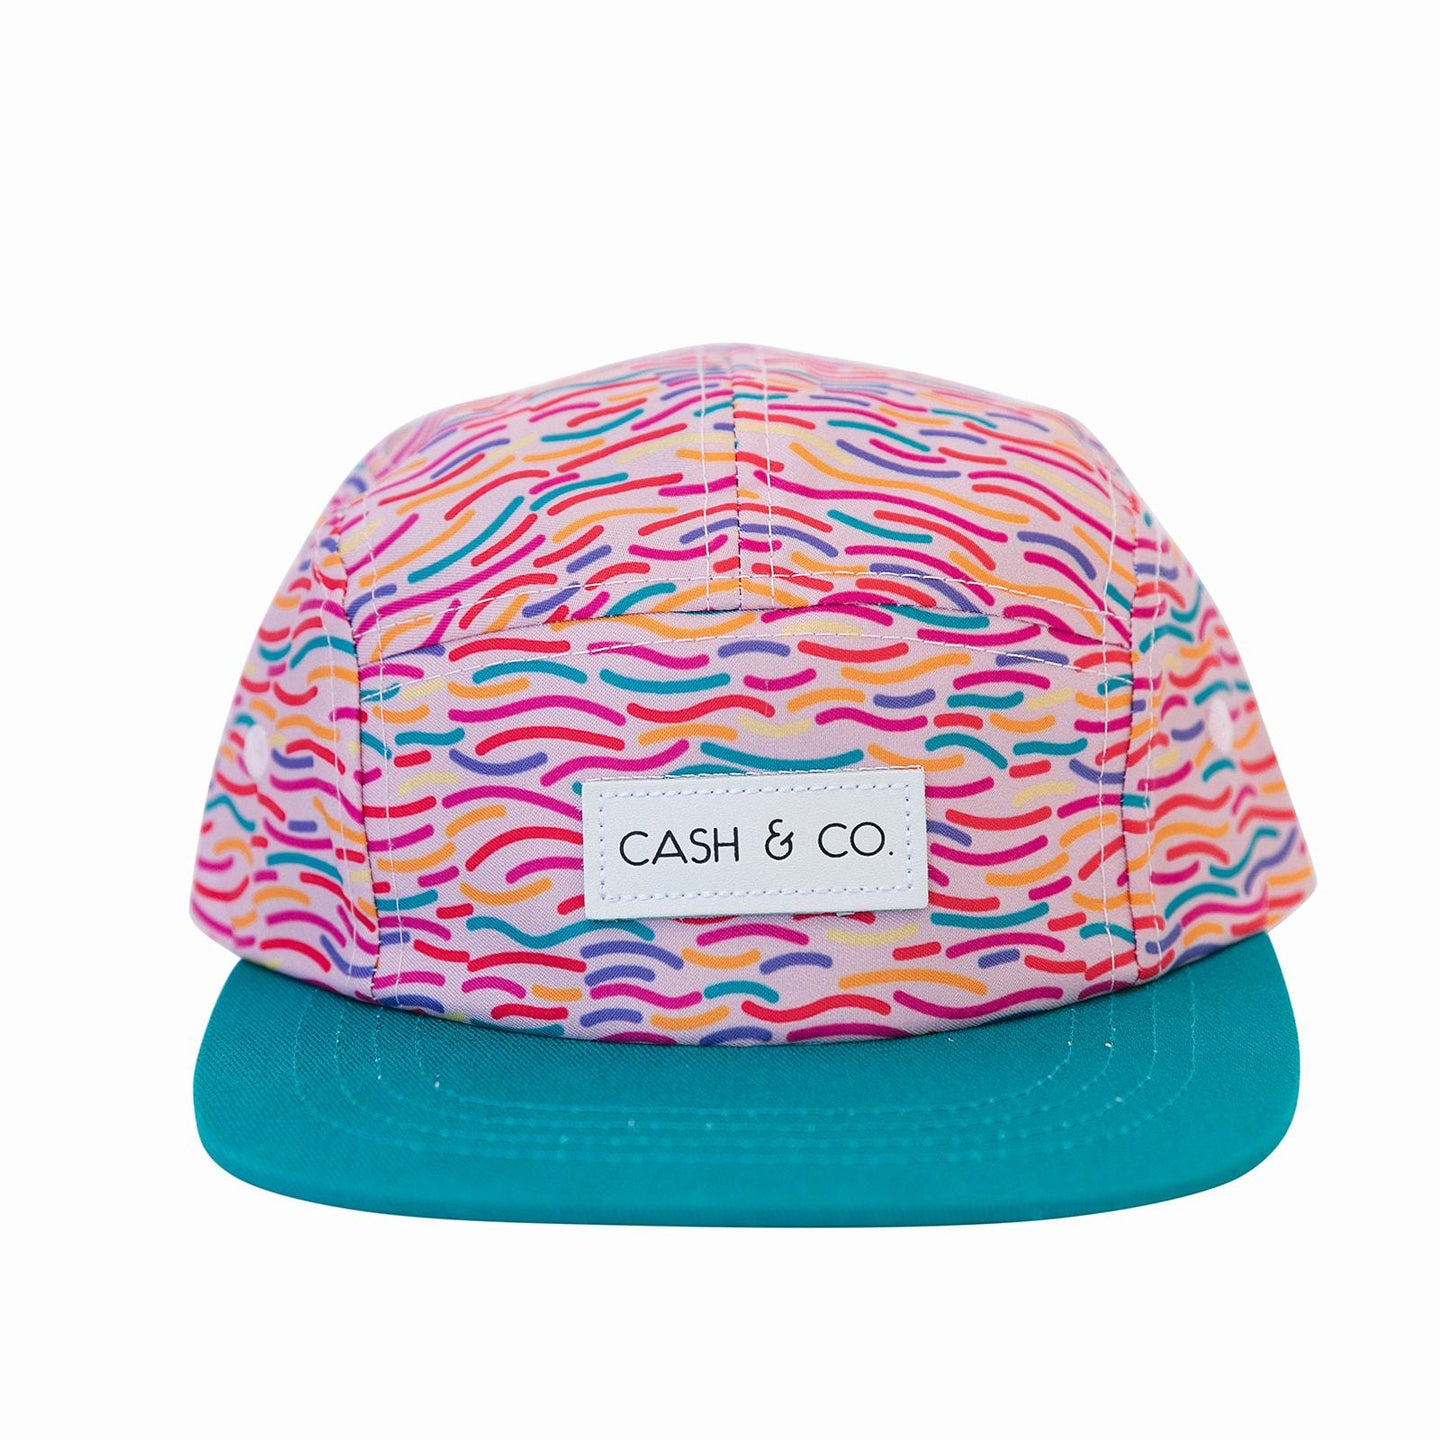 Cash & Co. - Sprinkles Hat